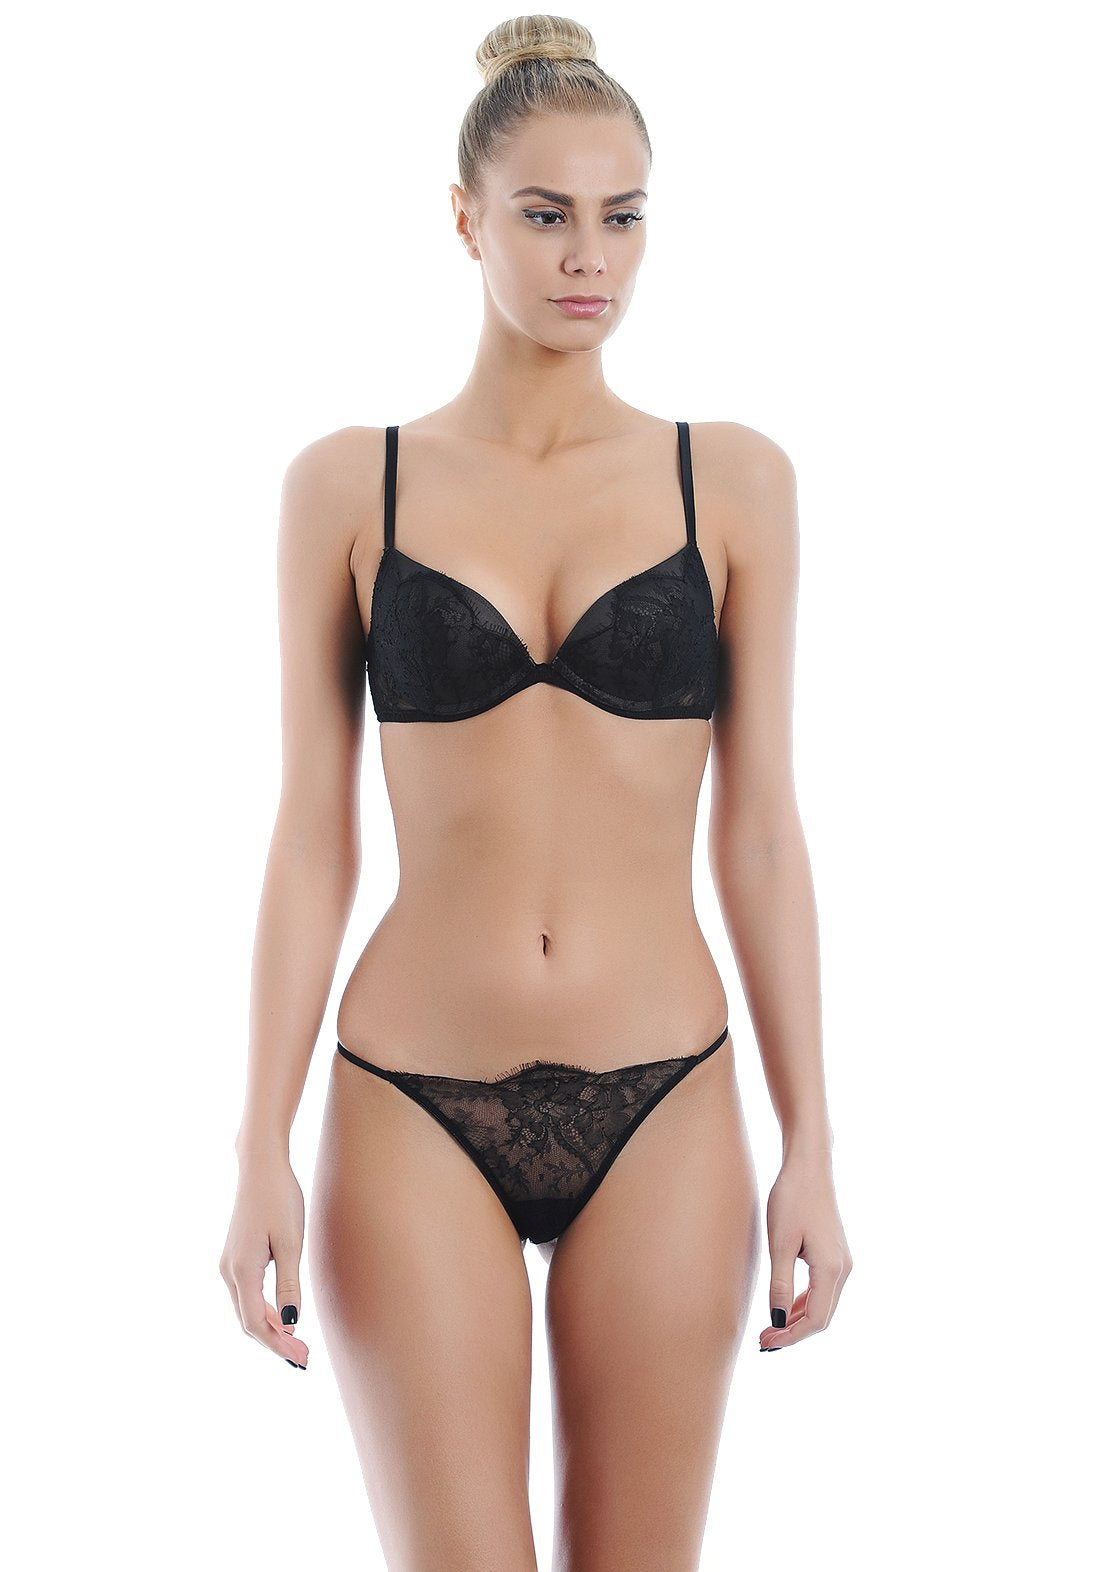 Belle Du Jour Padded Bra in Black